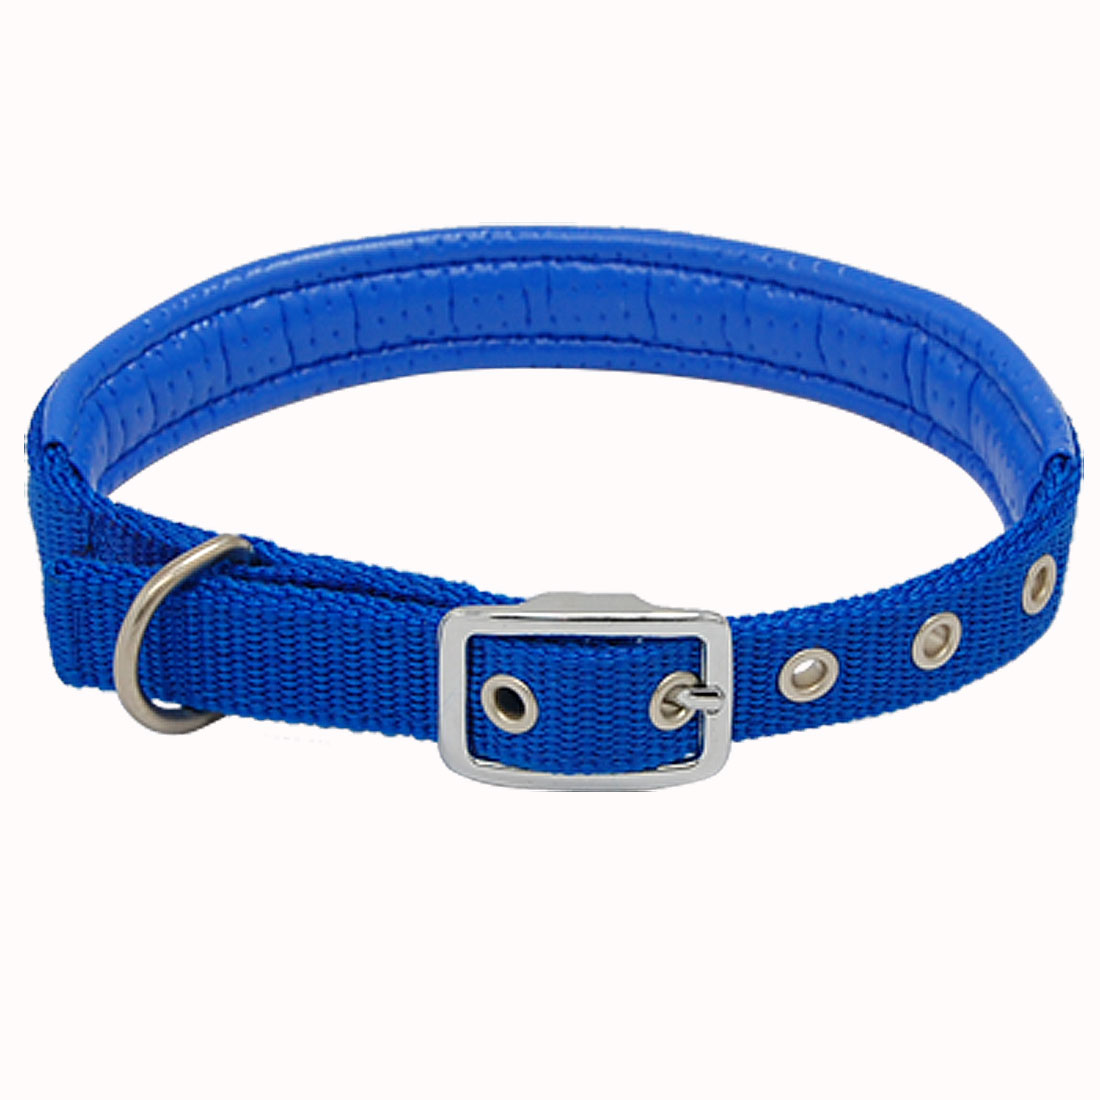 Blue Leather Nylon Buckle Dog Collar